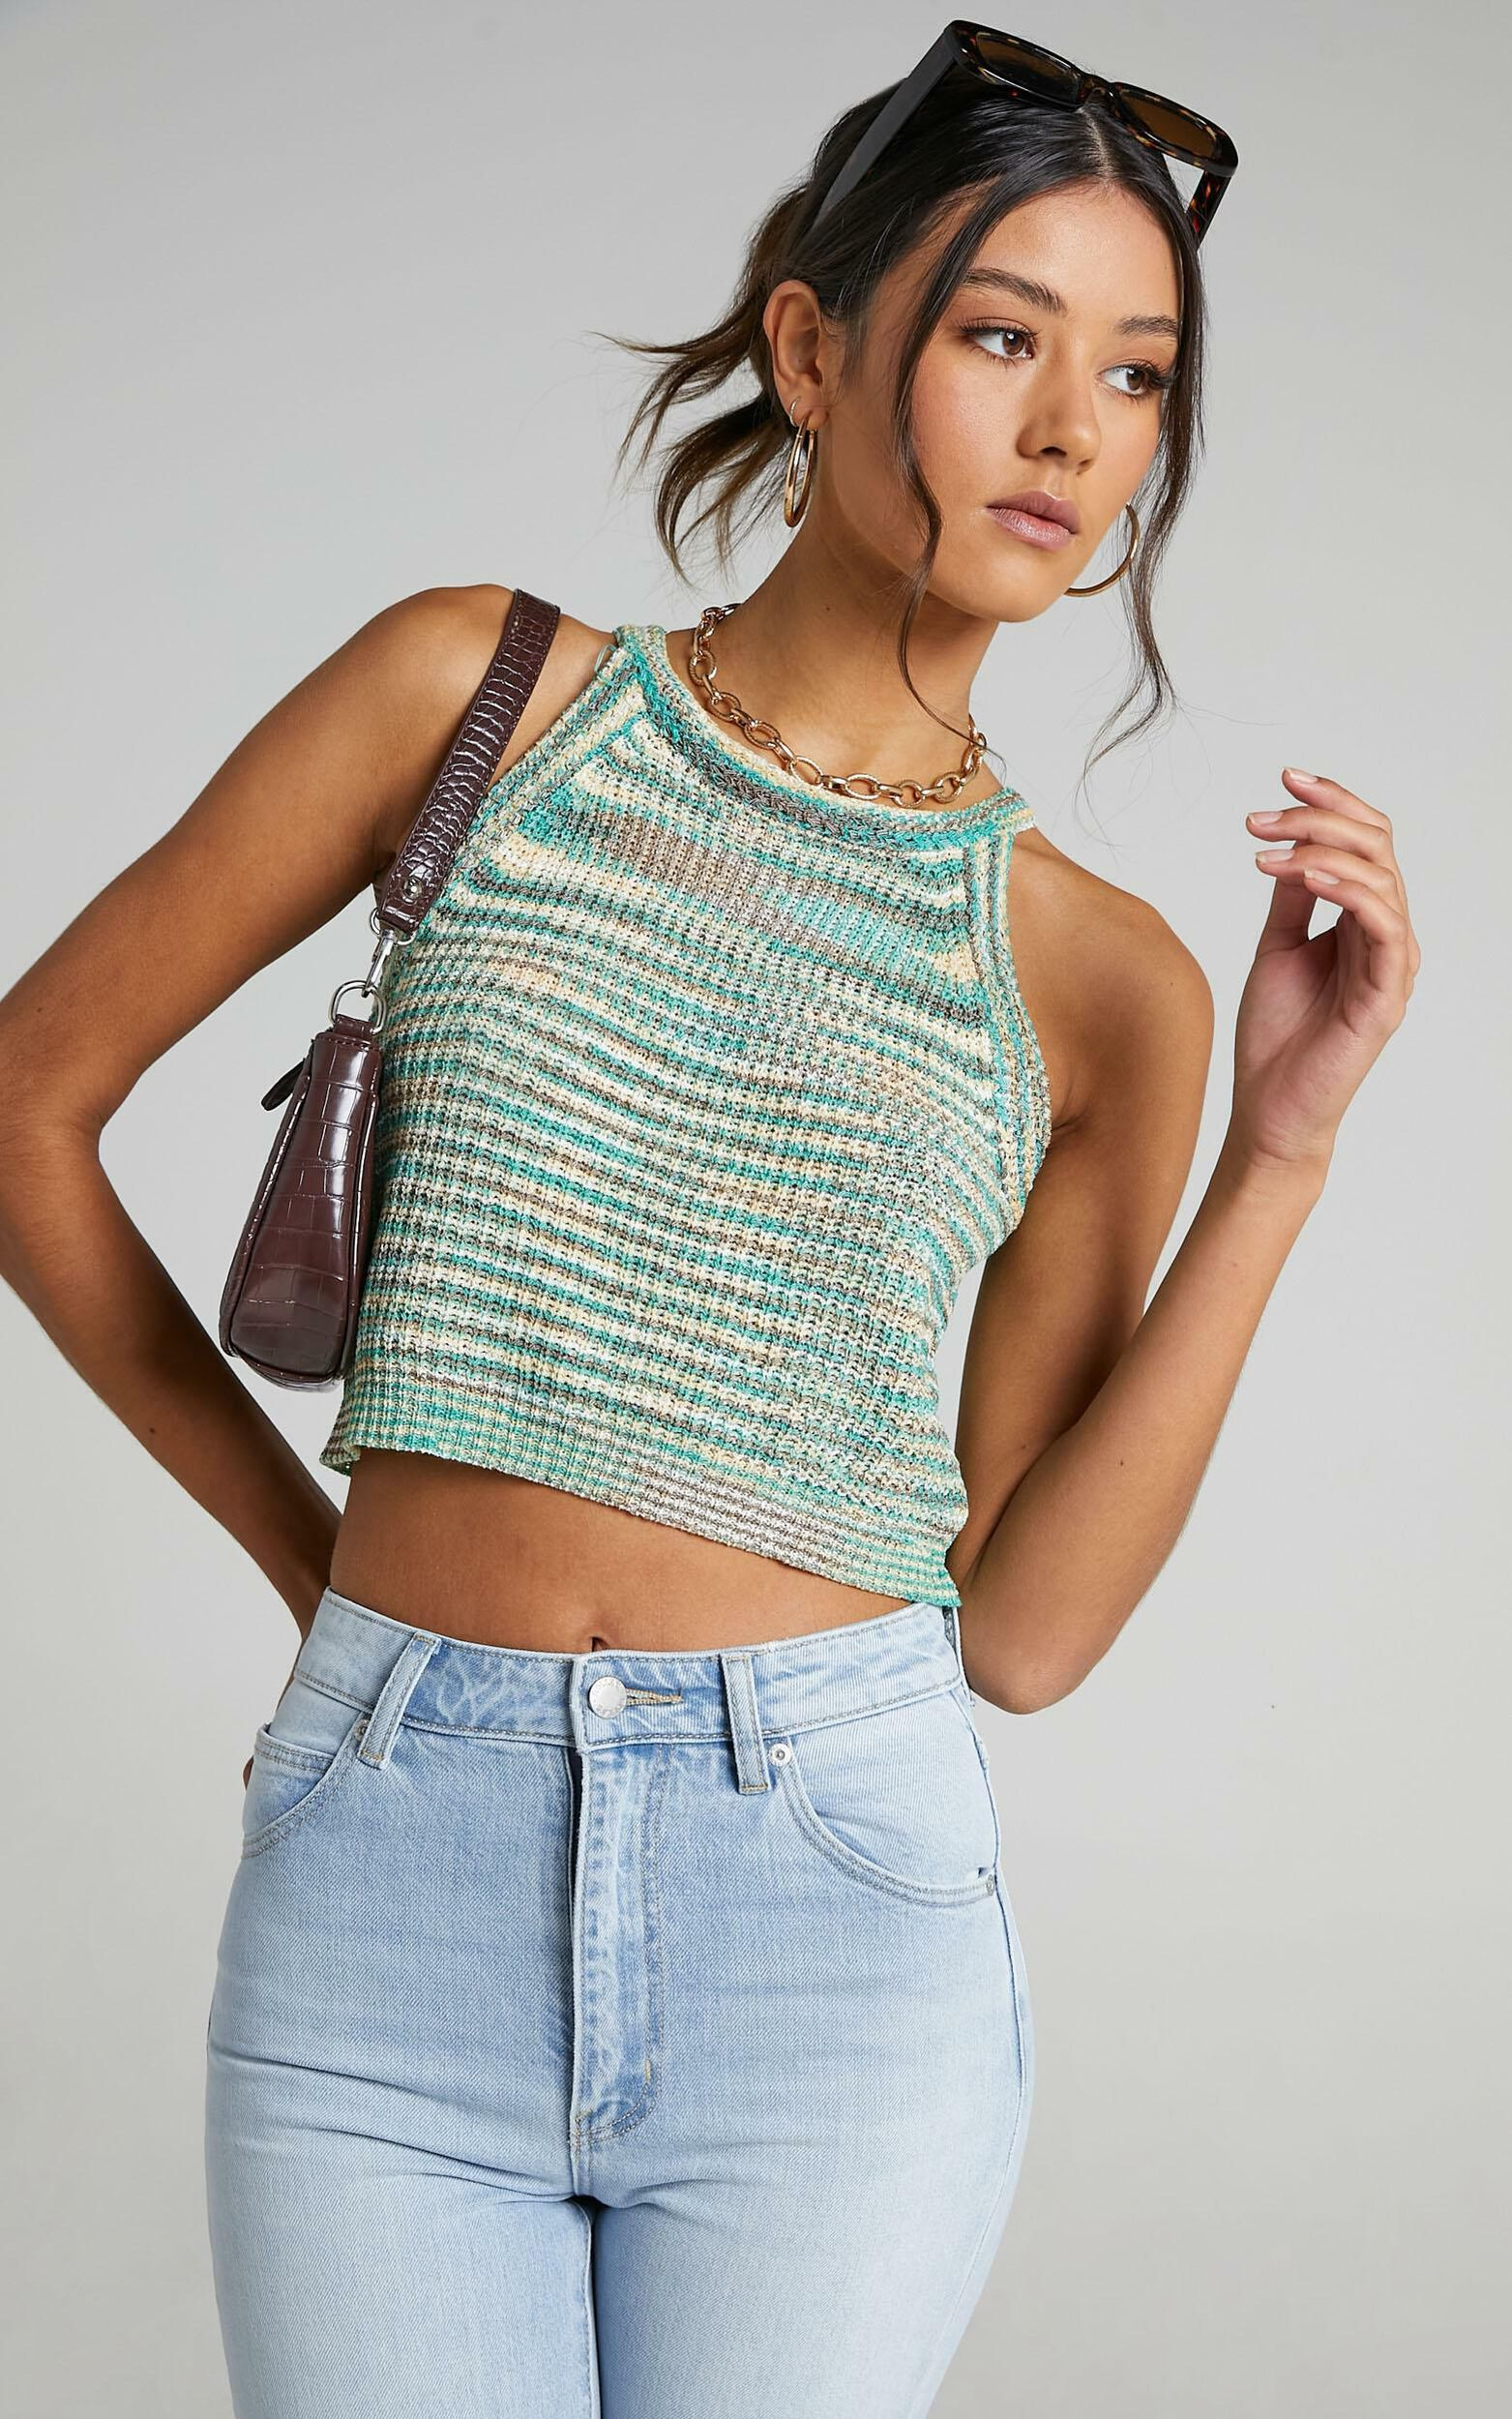 Bexley Top in Green Space Dye - S/M, GRN1, super-hi-res image number null